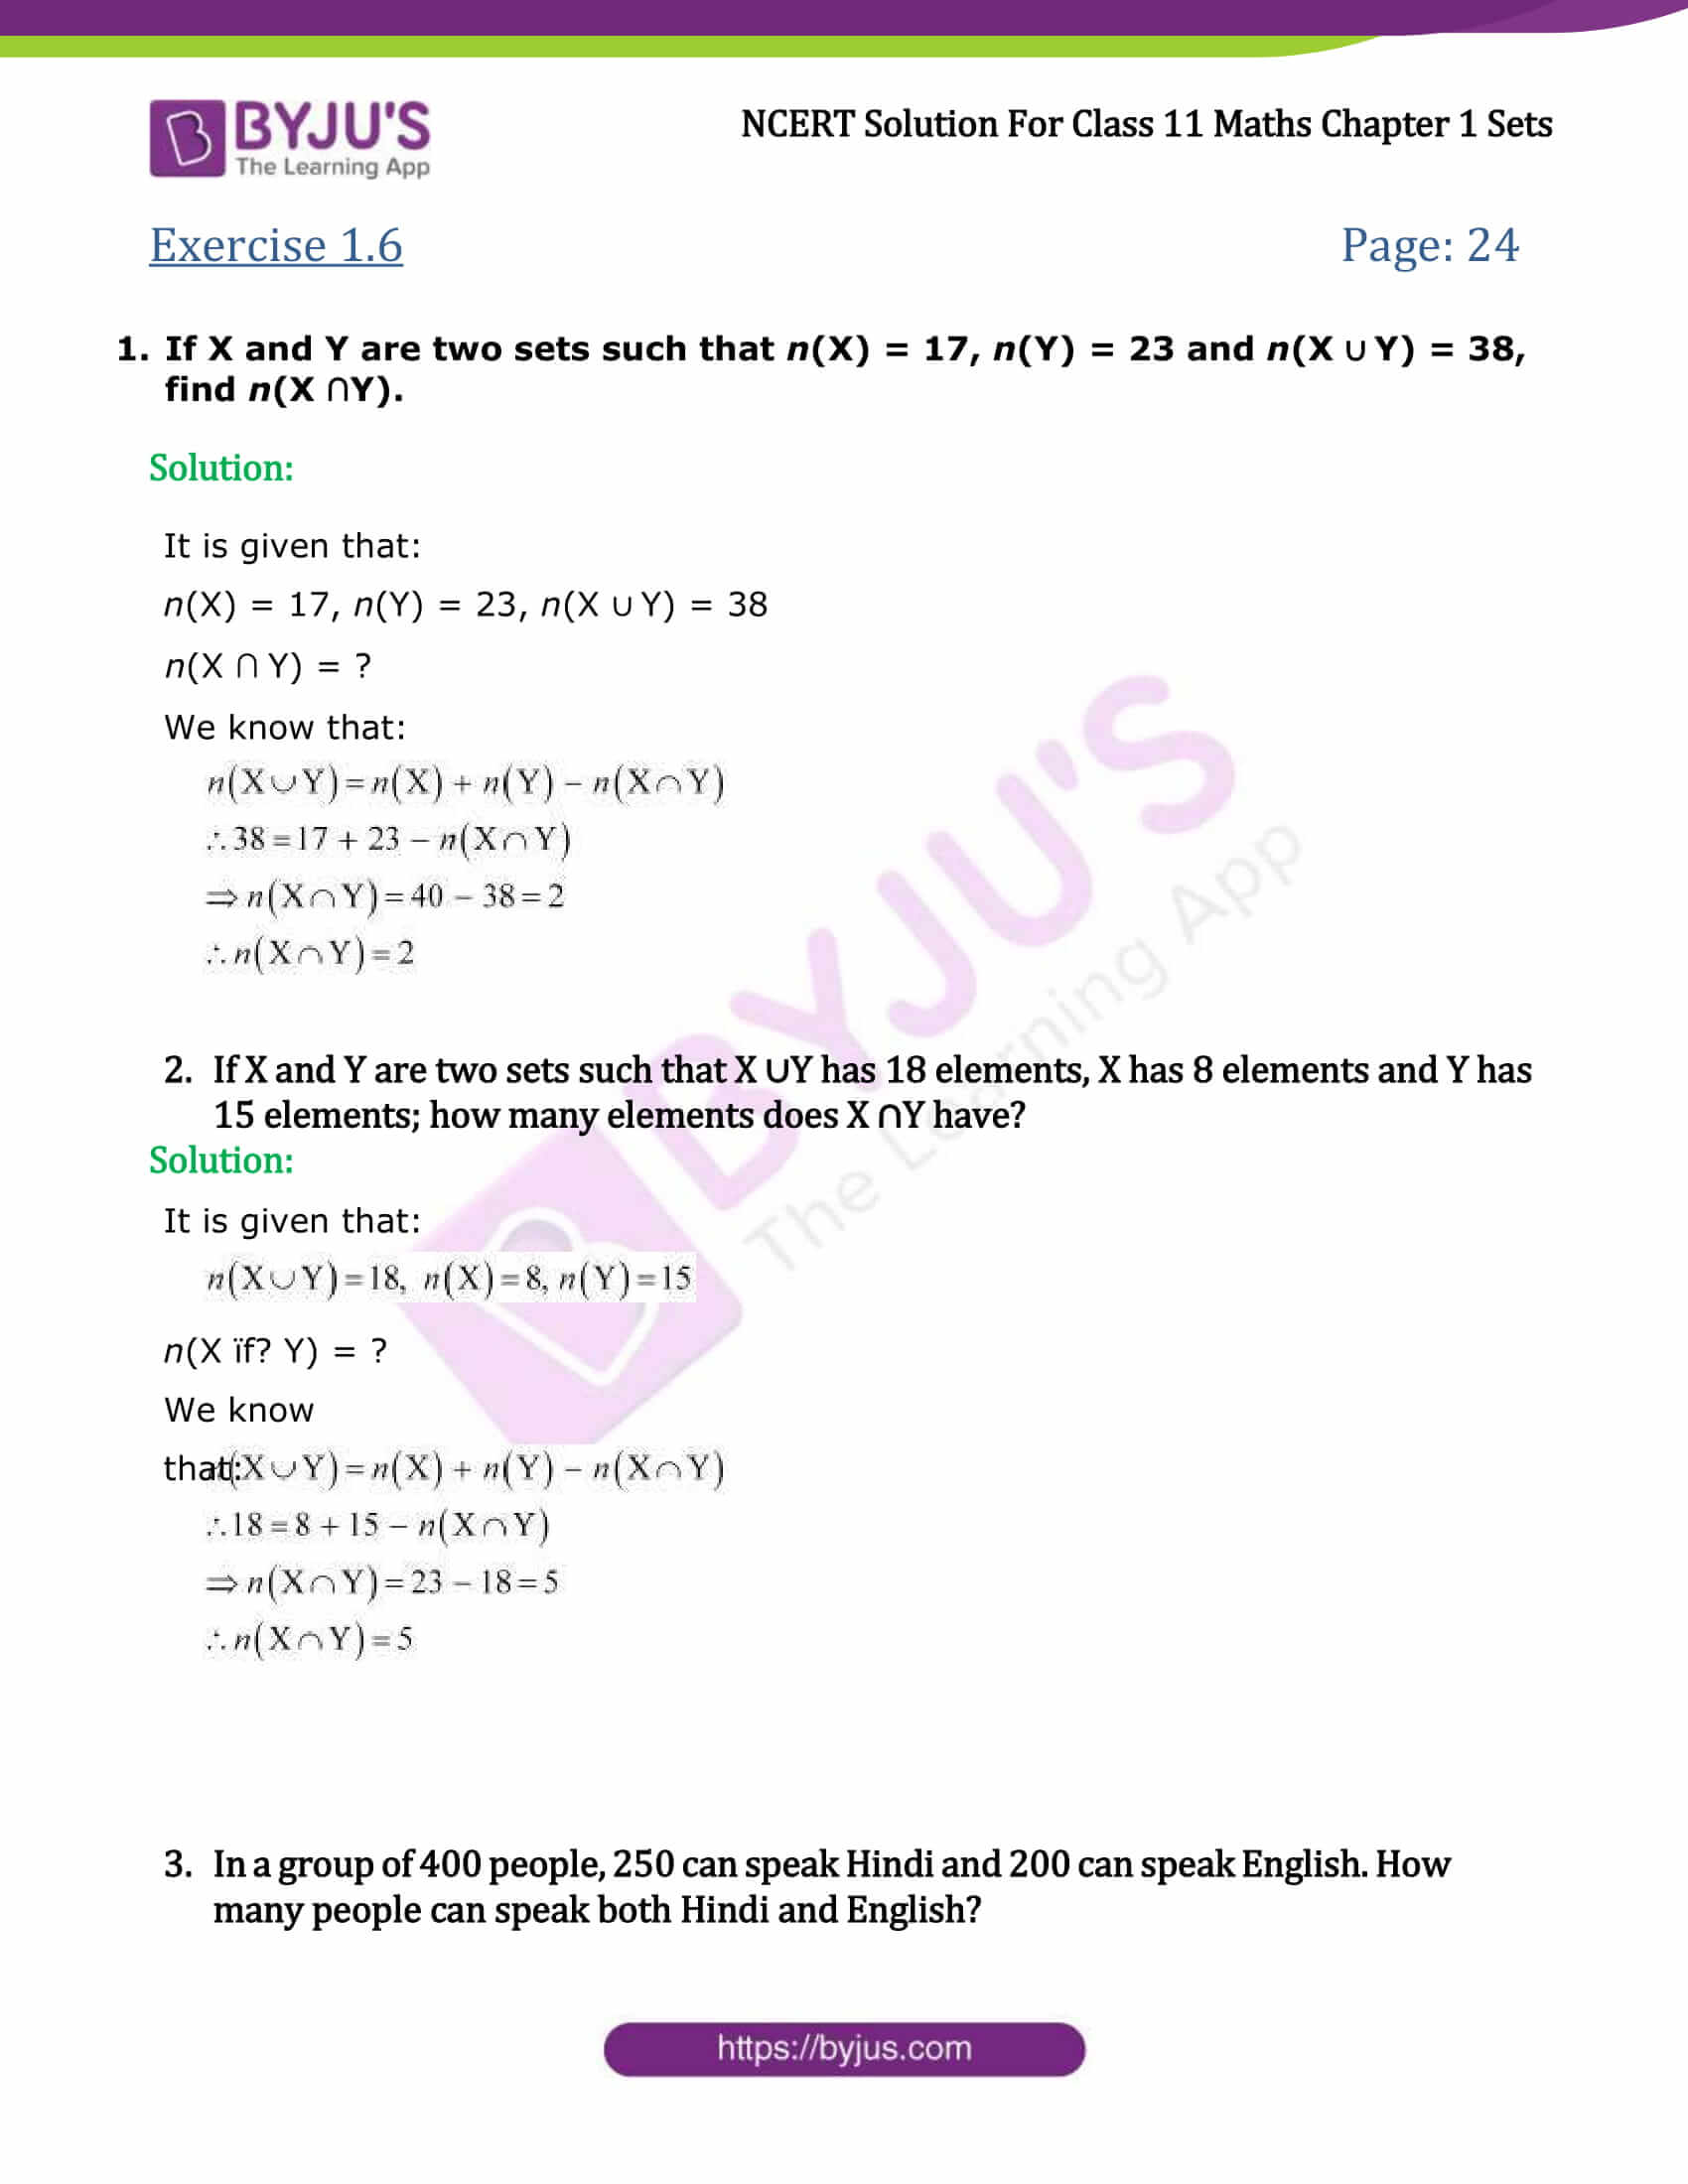 NCERT Solutions Class 11 Maths Chapter 1 Sets Ex 1 6 Free PDF Download